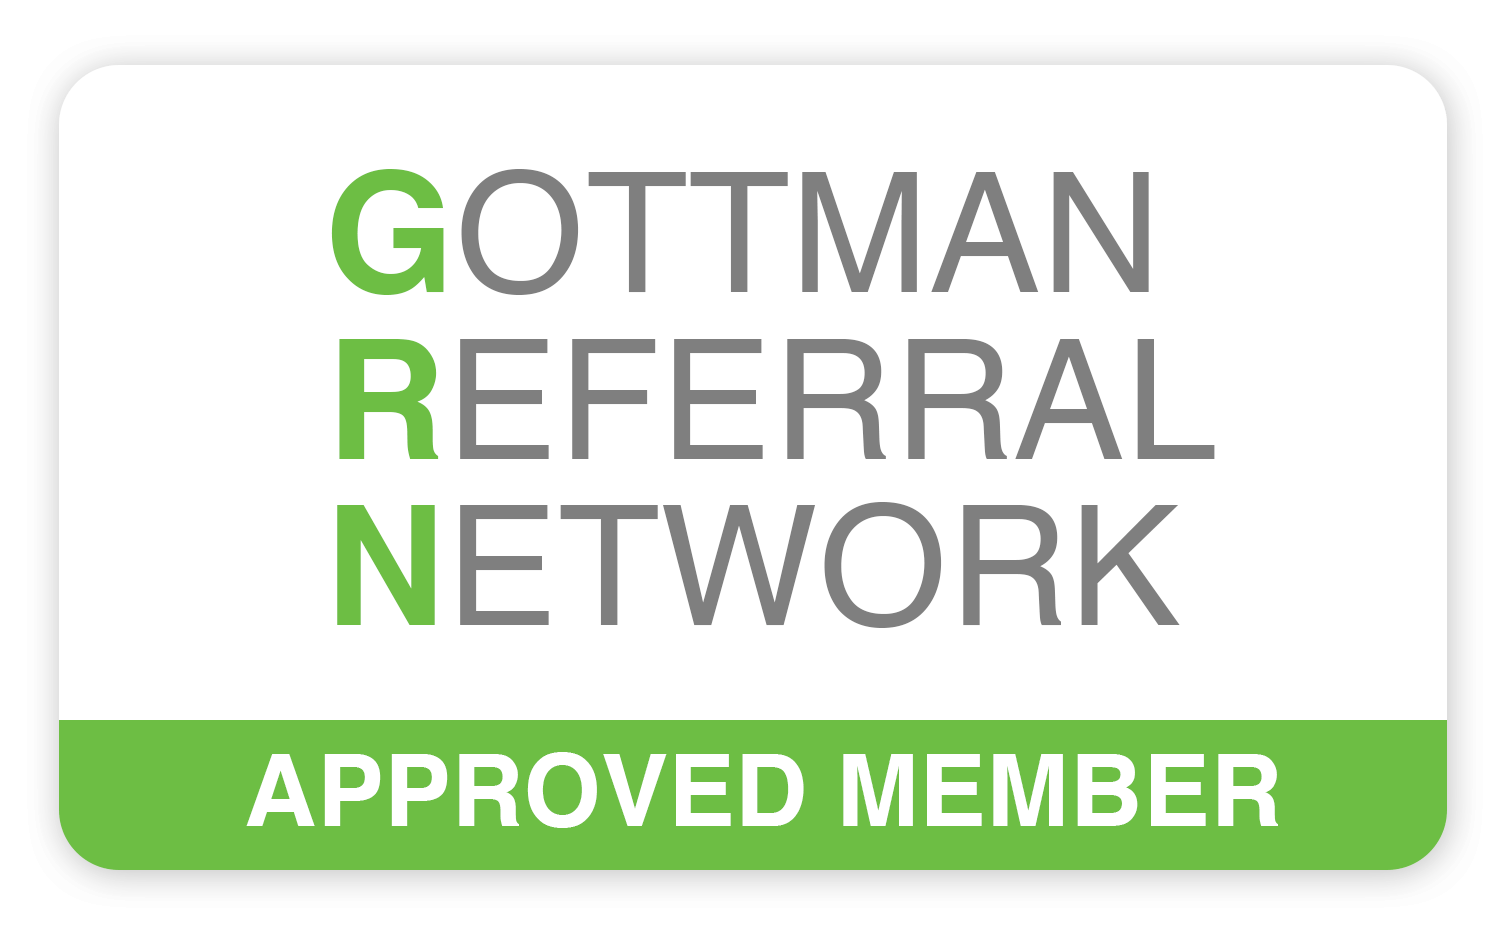 Monica Arroyo's profile on the Gottman Referral Network